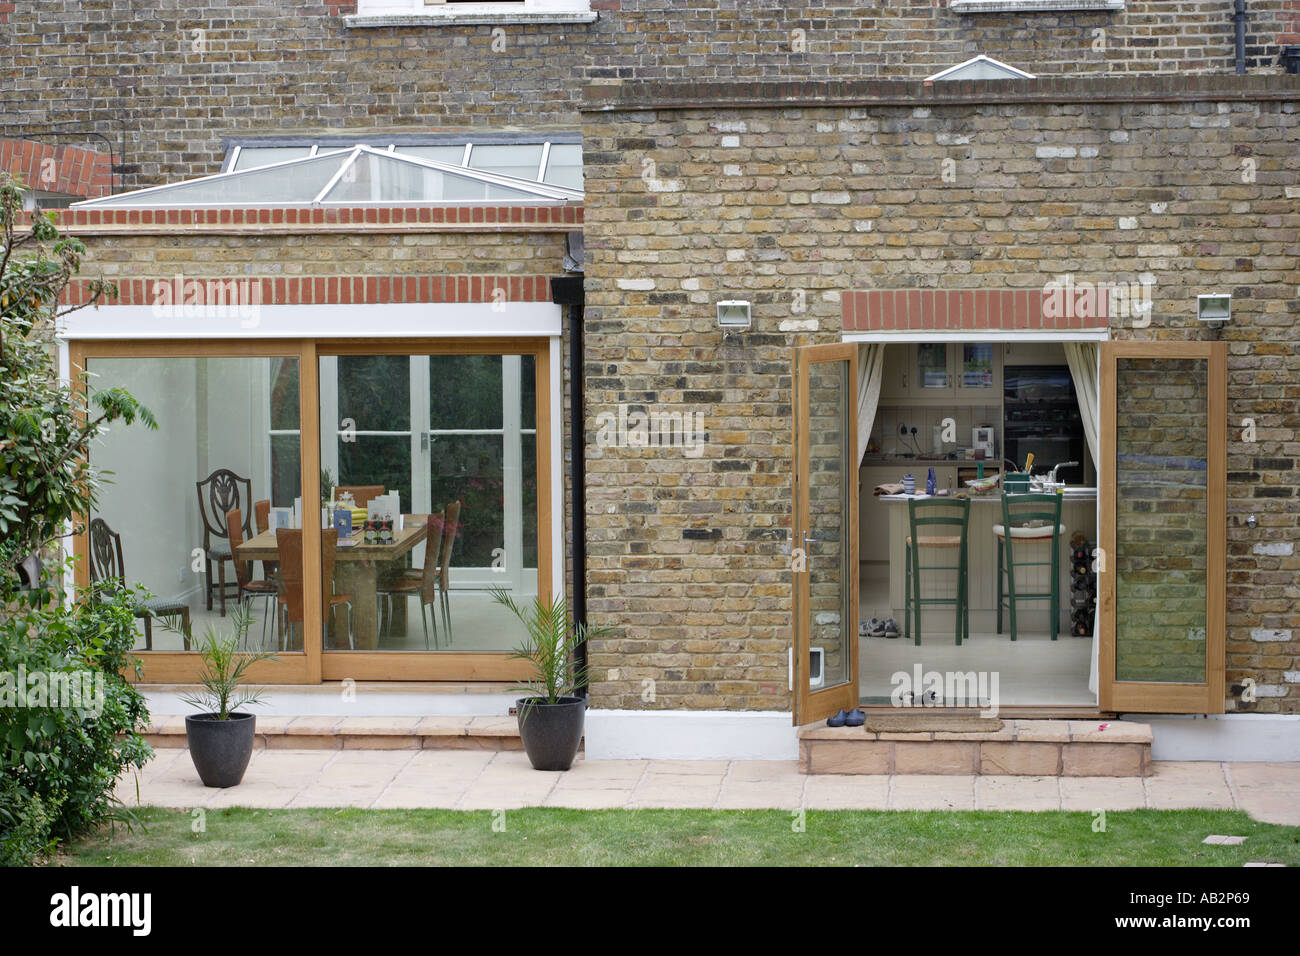 House extension with glass roof lantern - Stock Image